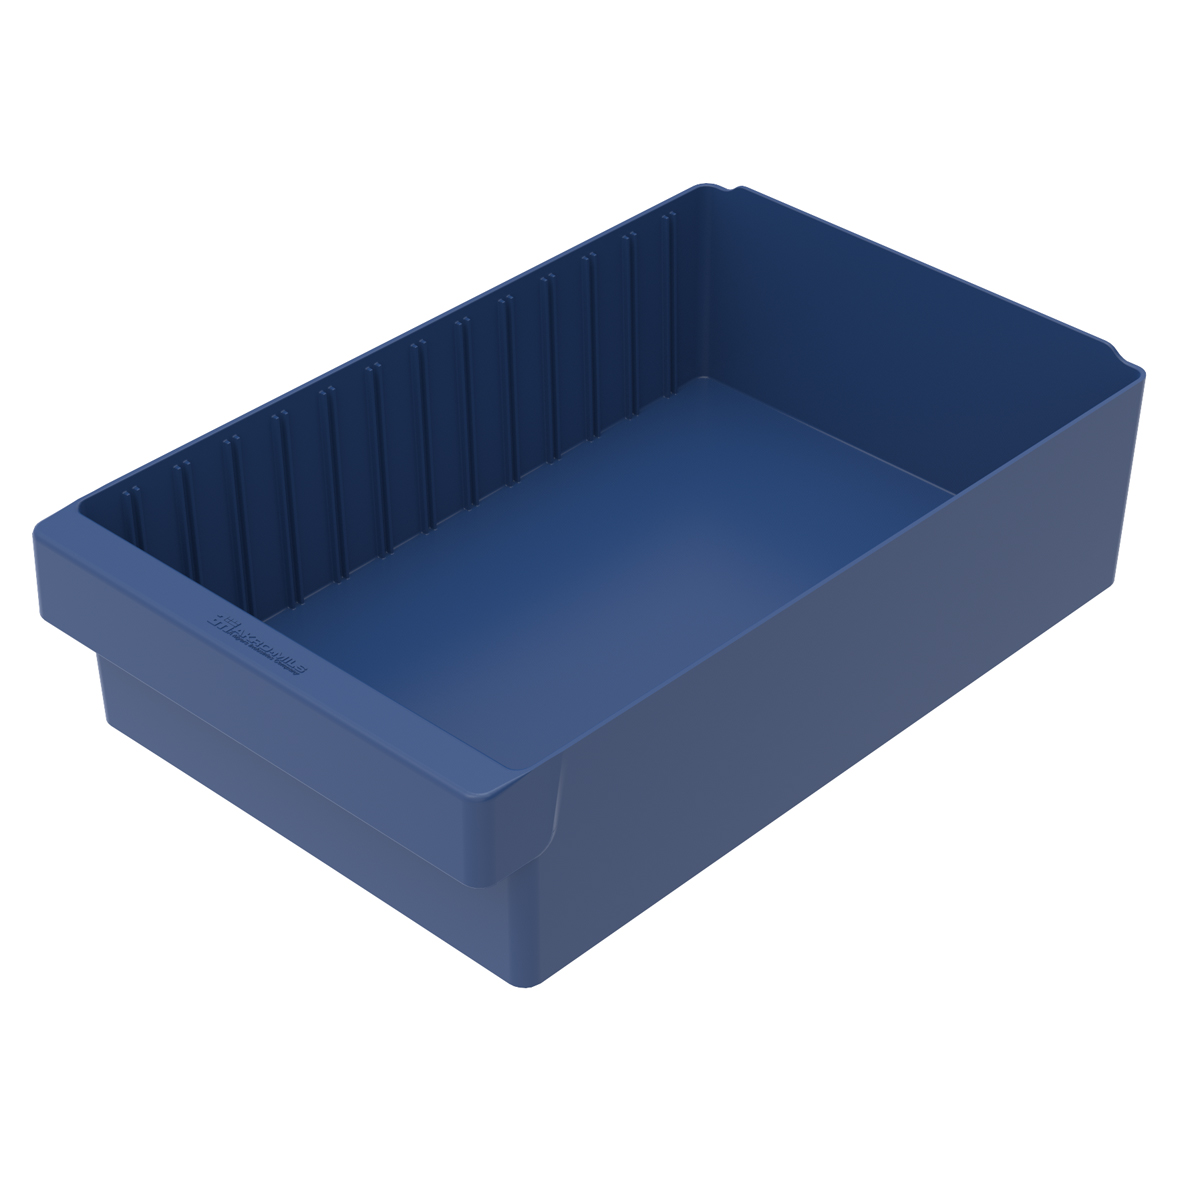 AkroDrawer 17-5/8 x 11-1/8 x 4-5/8, Blue (31118BLU).  This item sold in carton quantities of 4.